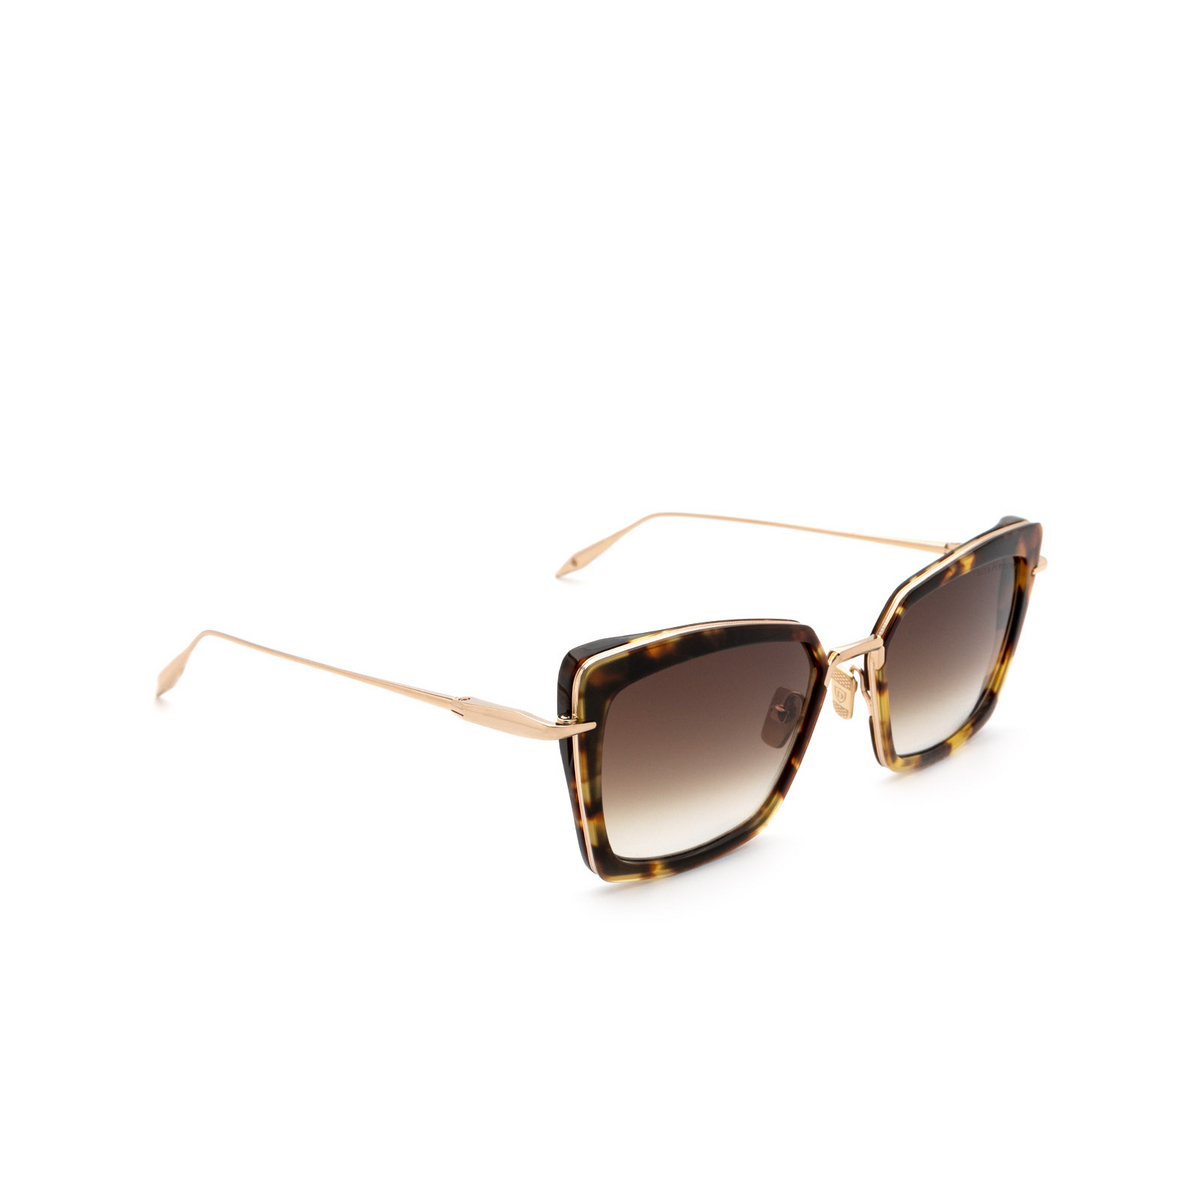 Dita® Butterfly Sunglasses: Perplexer DTS405-A-02 color Tortoise Gold Trt-gld - three-quarters view.